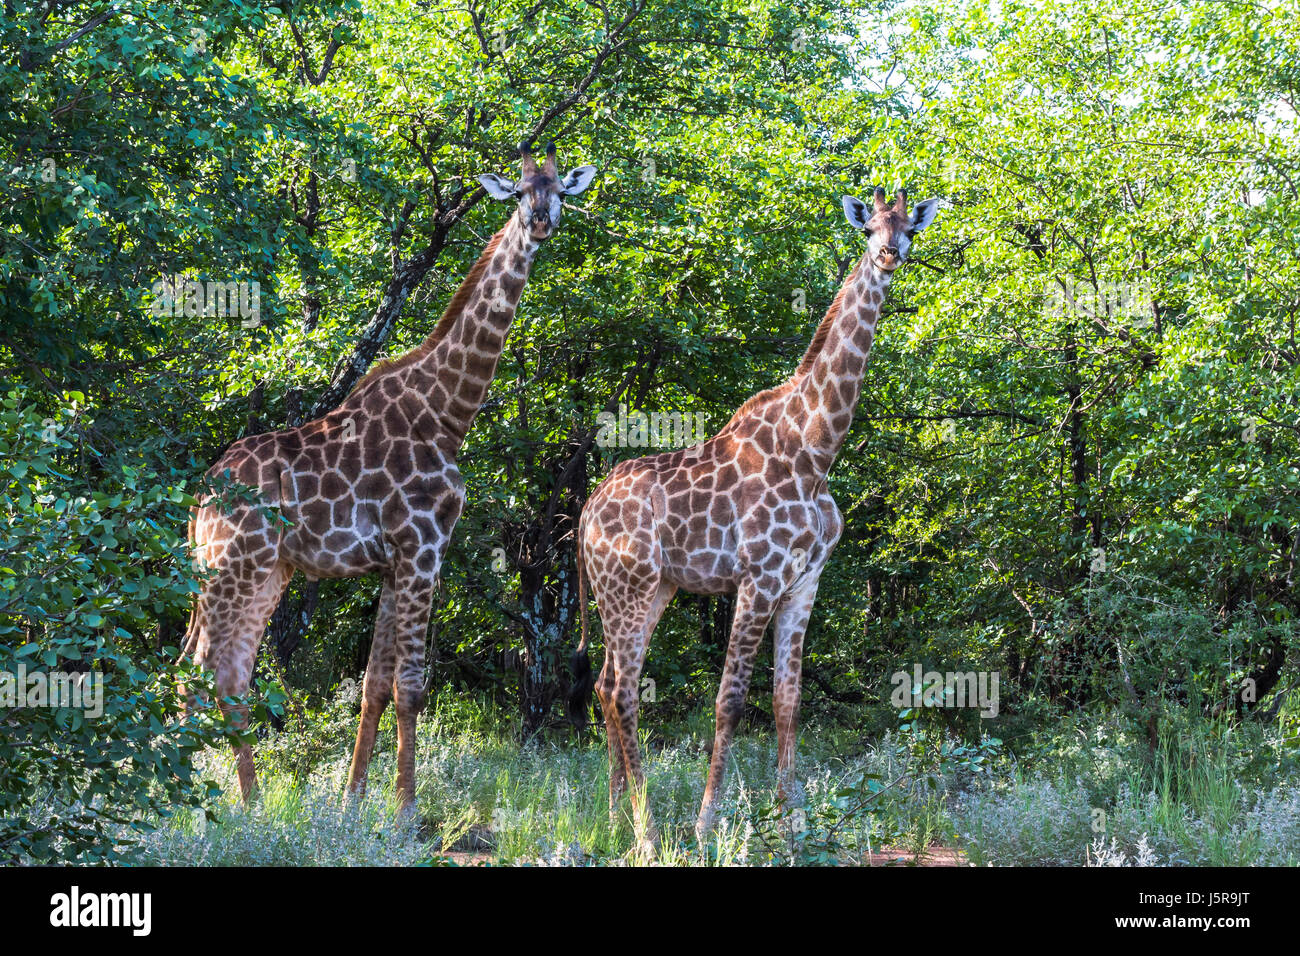 Two Giraffes standing inside Kruger Nationalpark in South Africa - Stock Image